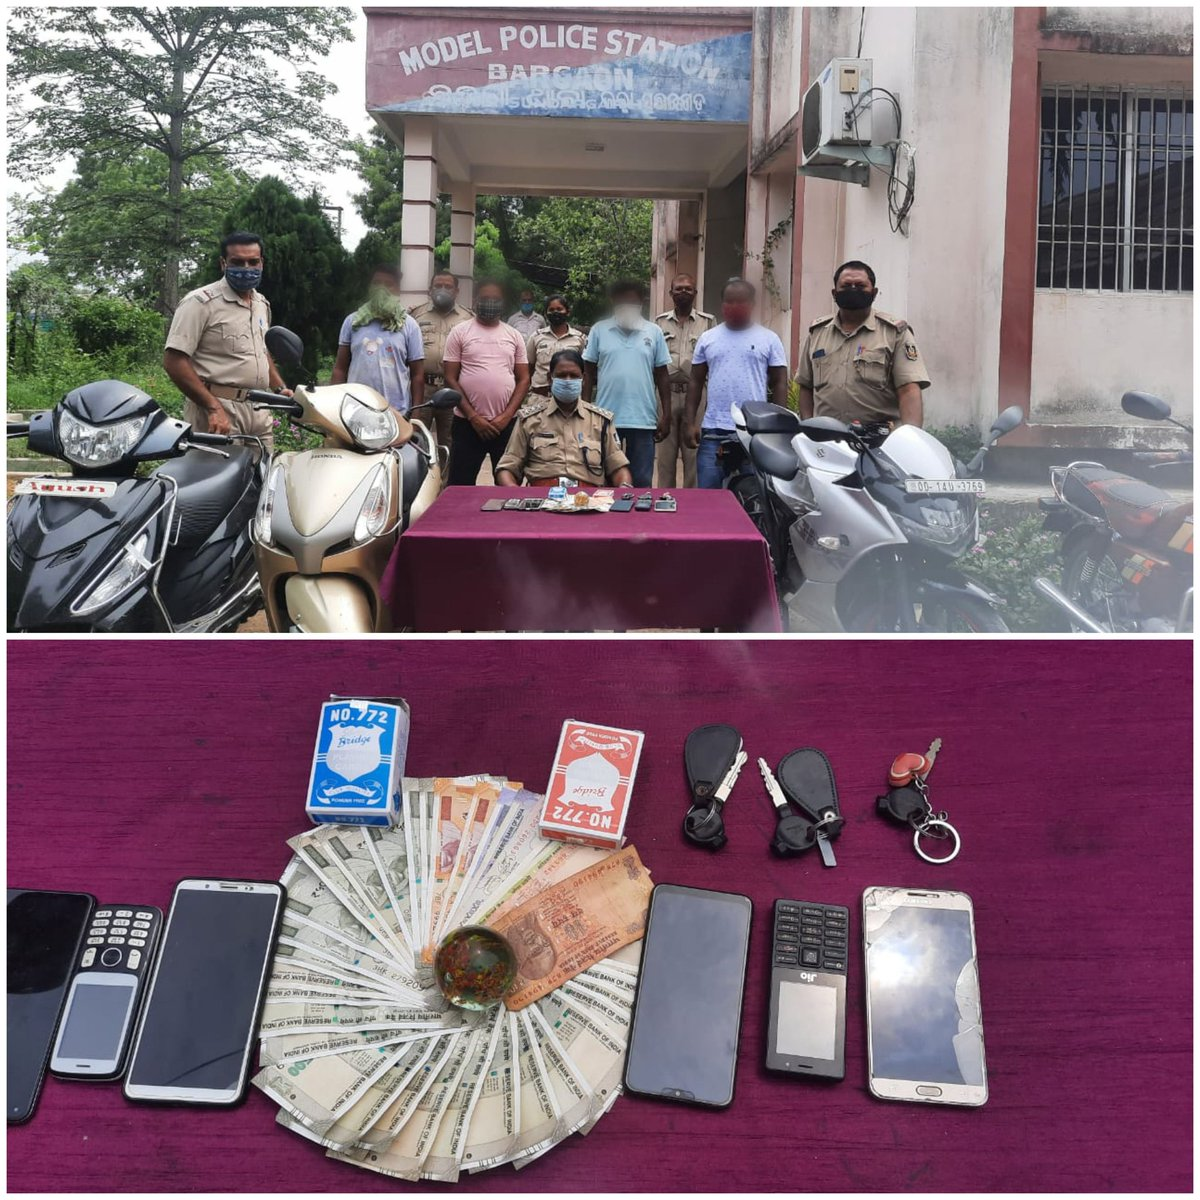 Bargaon Police detected a gambling case and seized cash of Rs 15,240, two sets of playing cards, One plastic mate, Six nos of mobile phone, One car, two M/C and four scooty. 4 persons have been apprehended from the spot. PS Case no.92/21, U/S-3 OPG Act have been registered. https://t.co/HmBe7VOszT